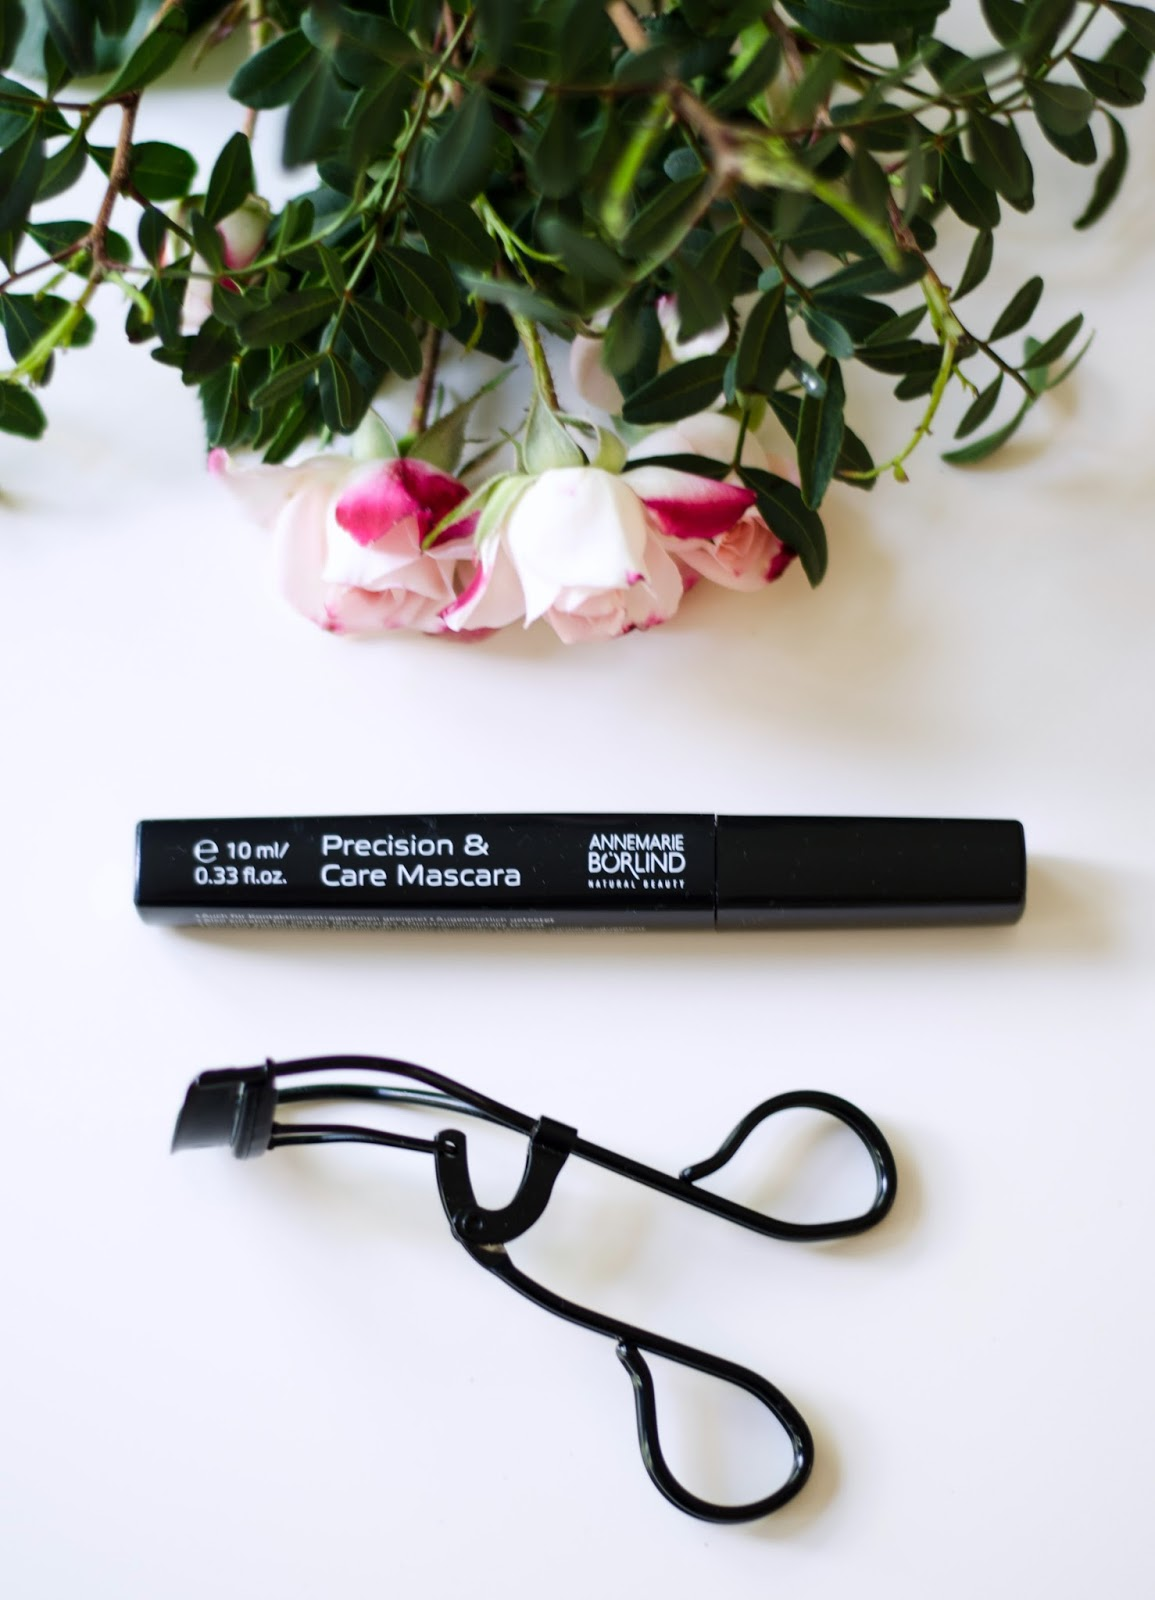 annemarie borlind natural make up mascara